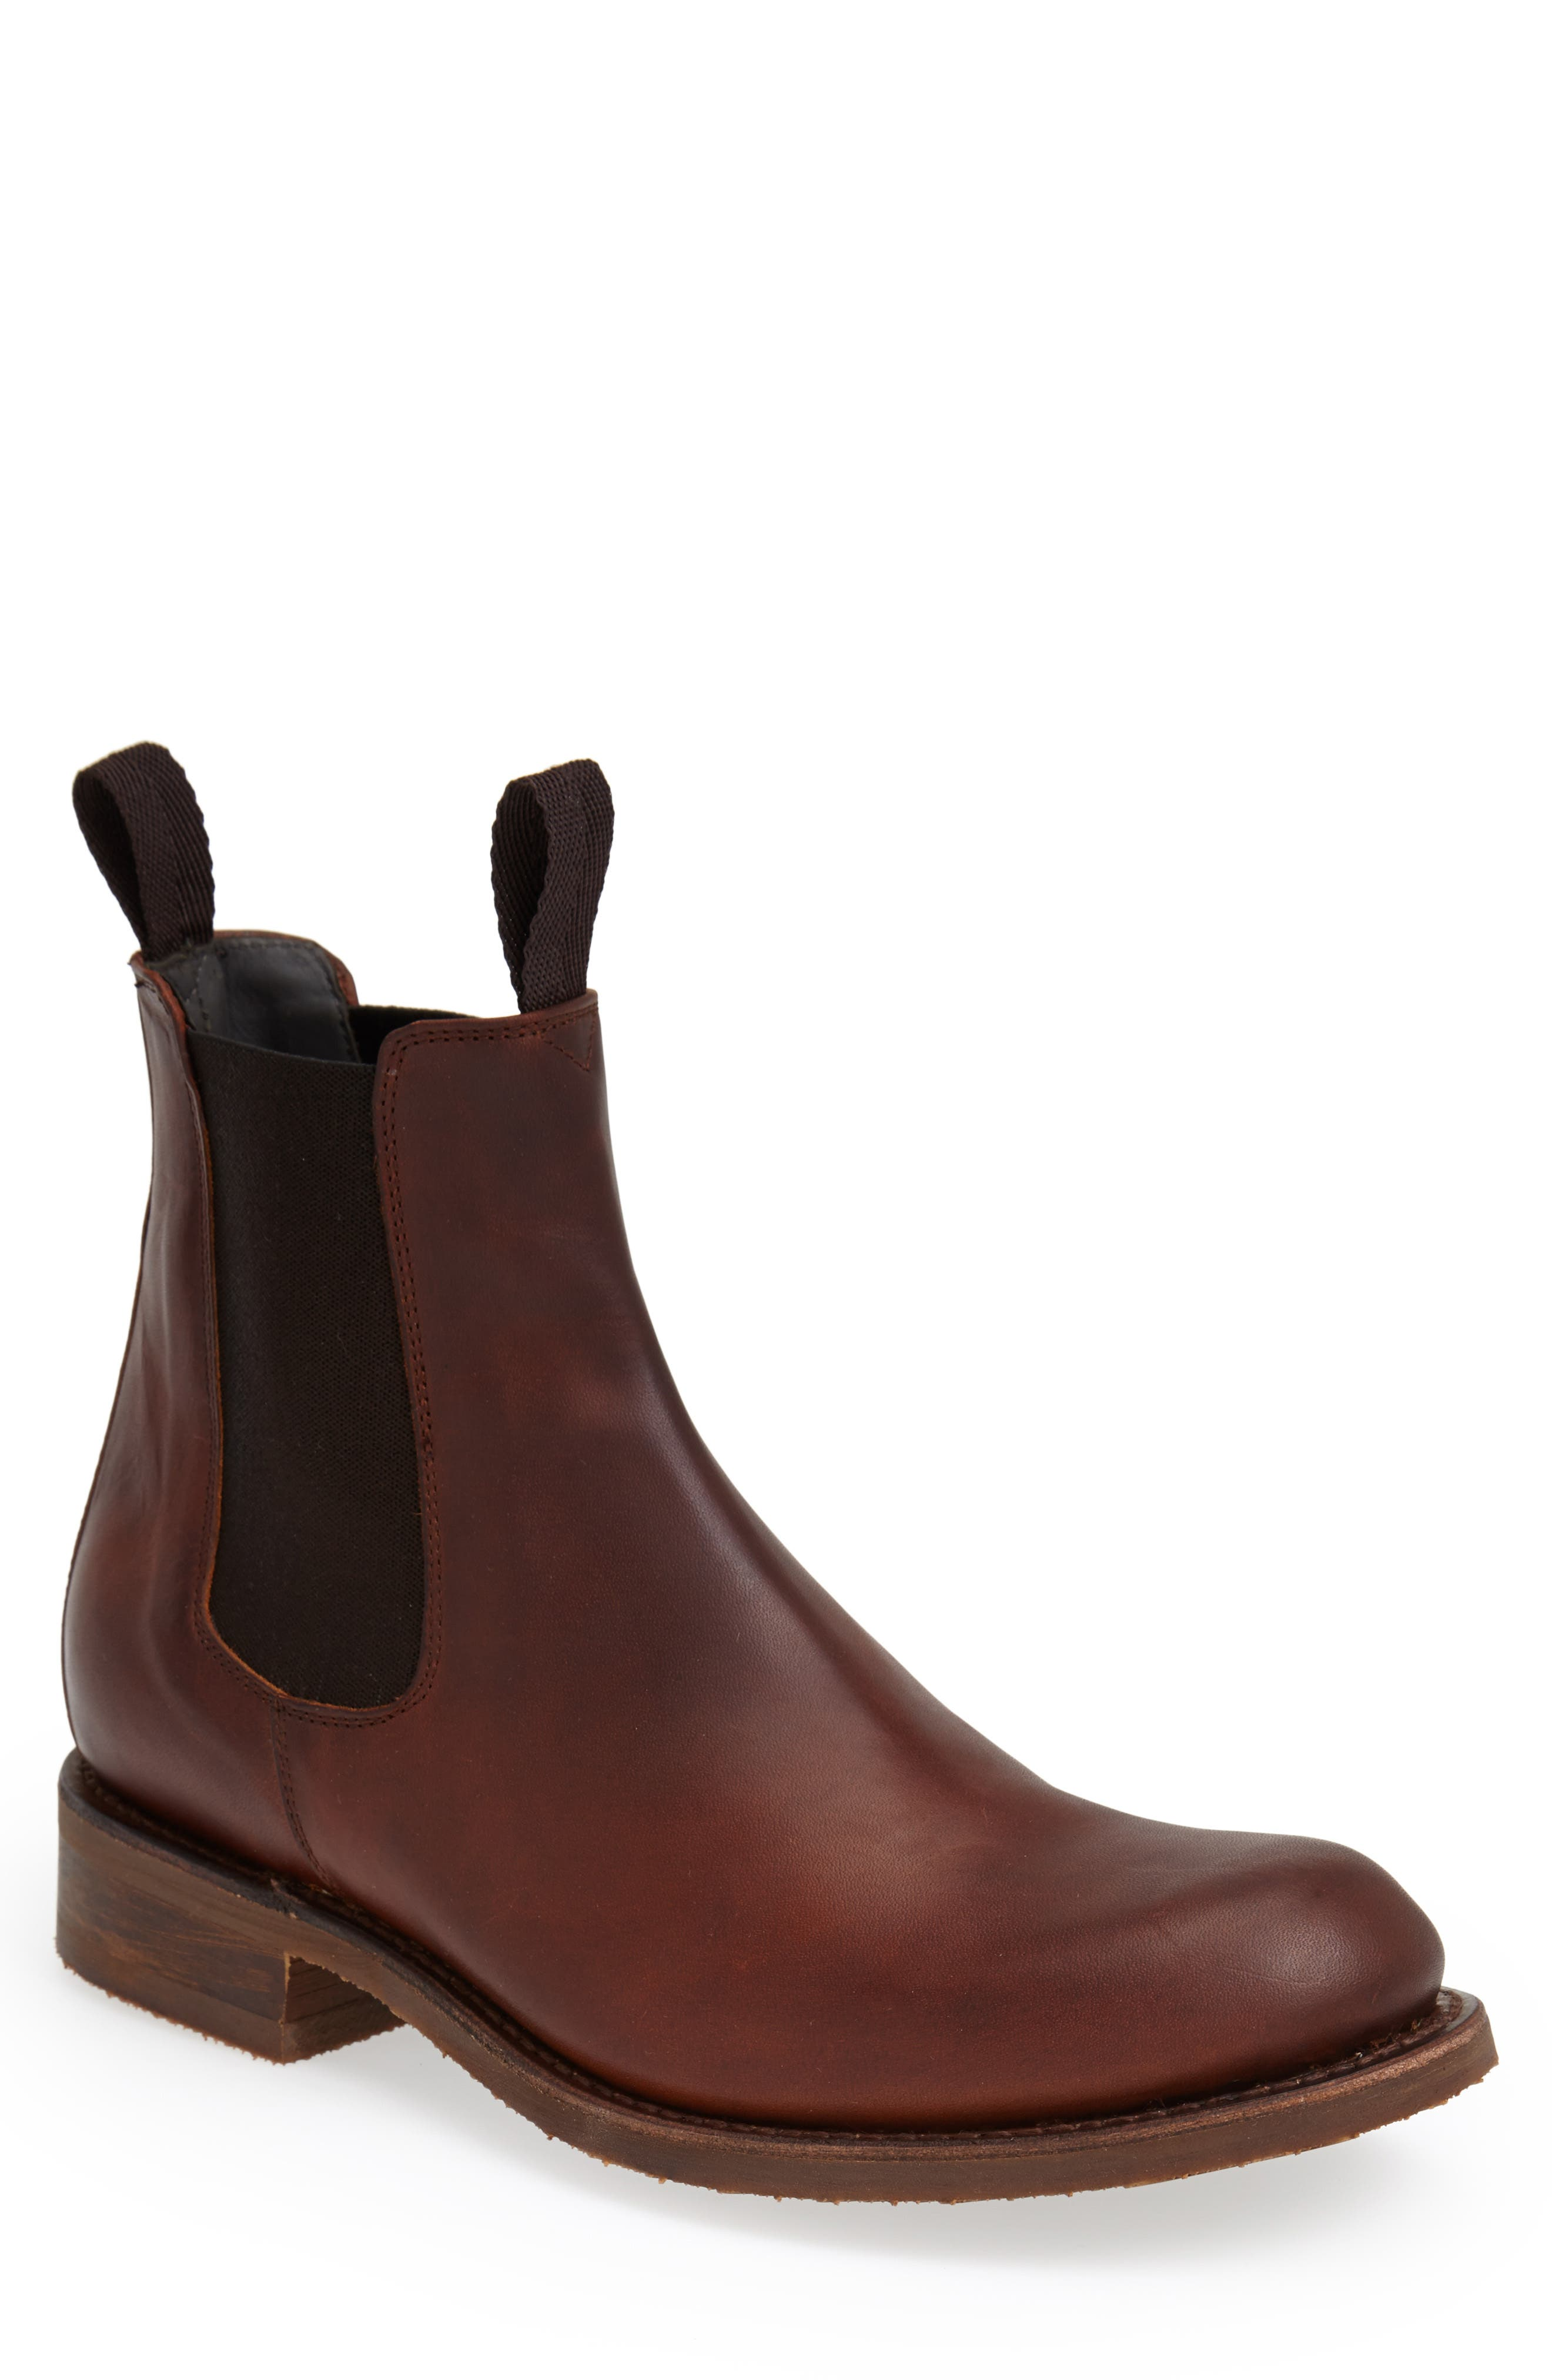 'Al' Chelsea Boot,                             Alternate thumbnail 4, color,                             TAN